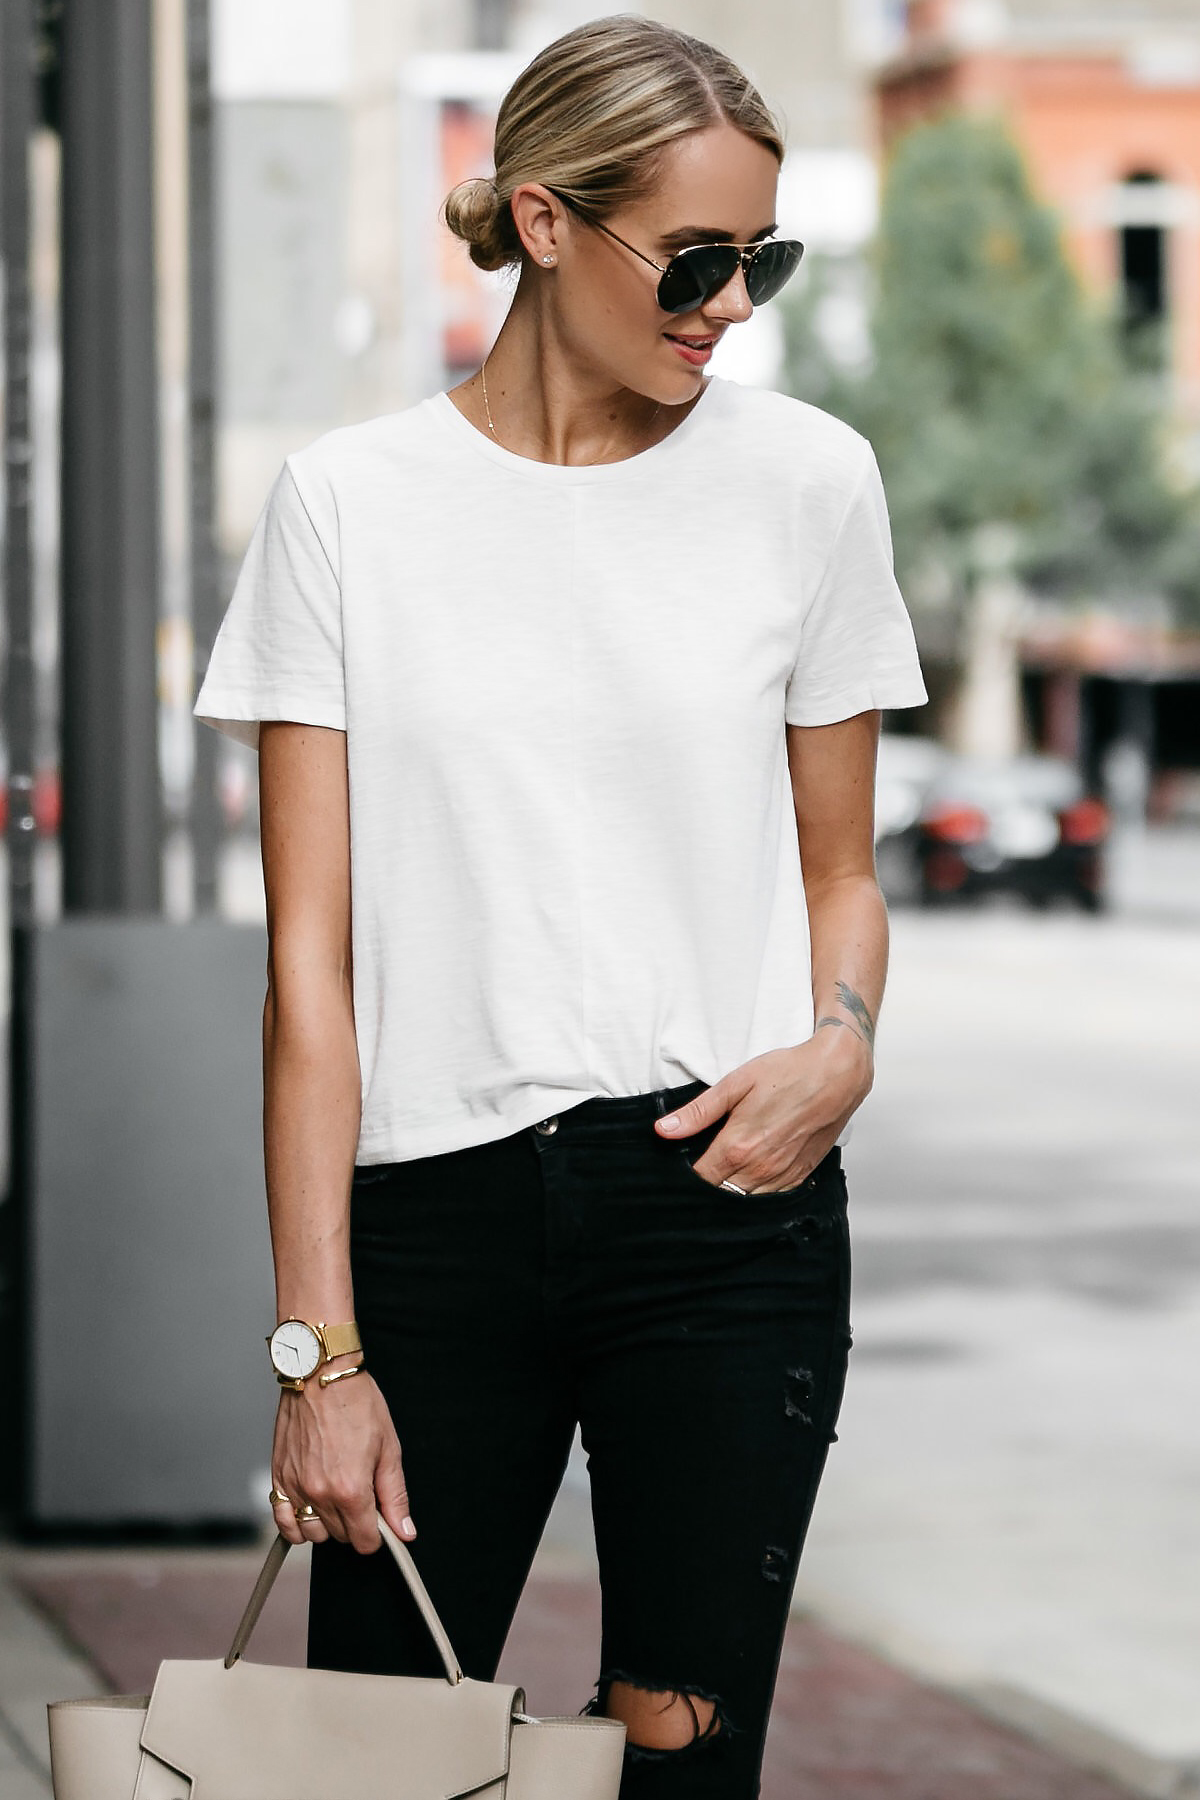 AN EASY WHITE TSHIRT AND JEANS OUTFIT